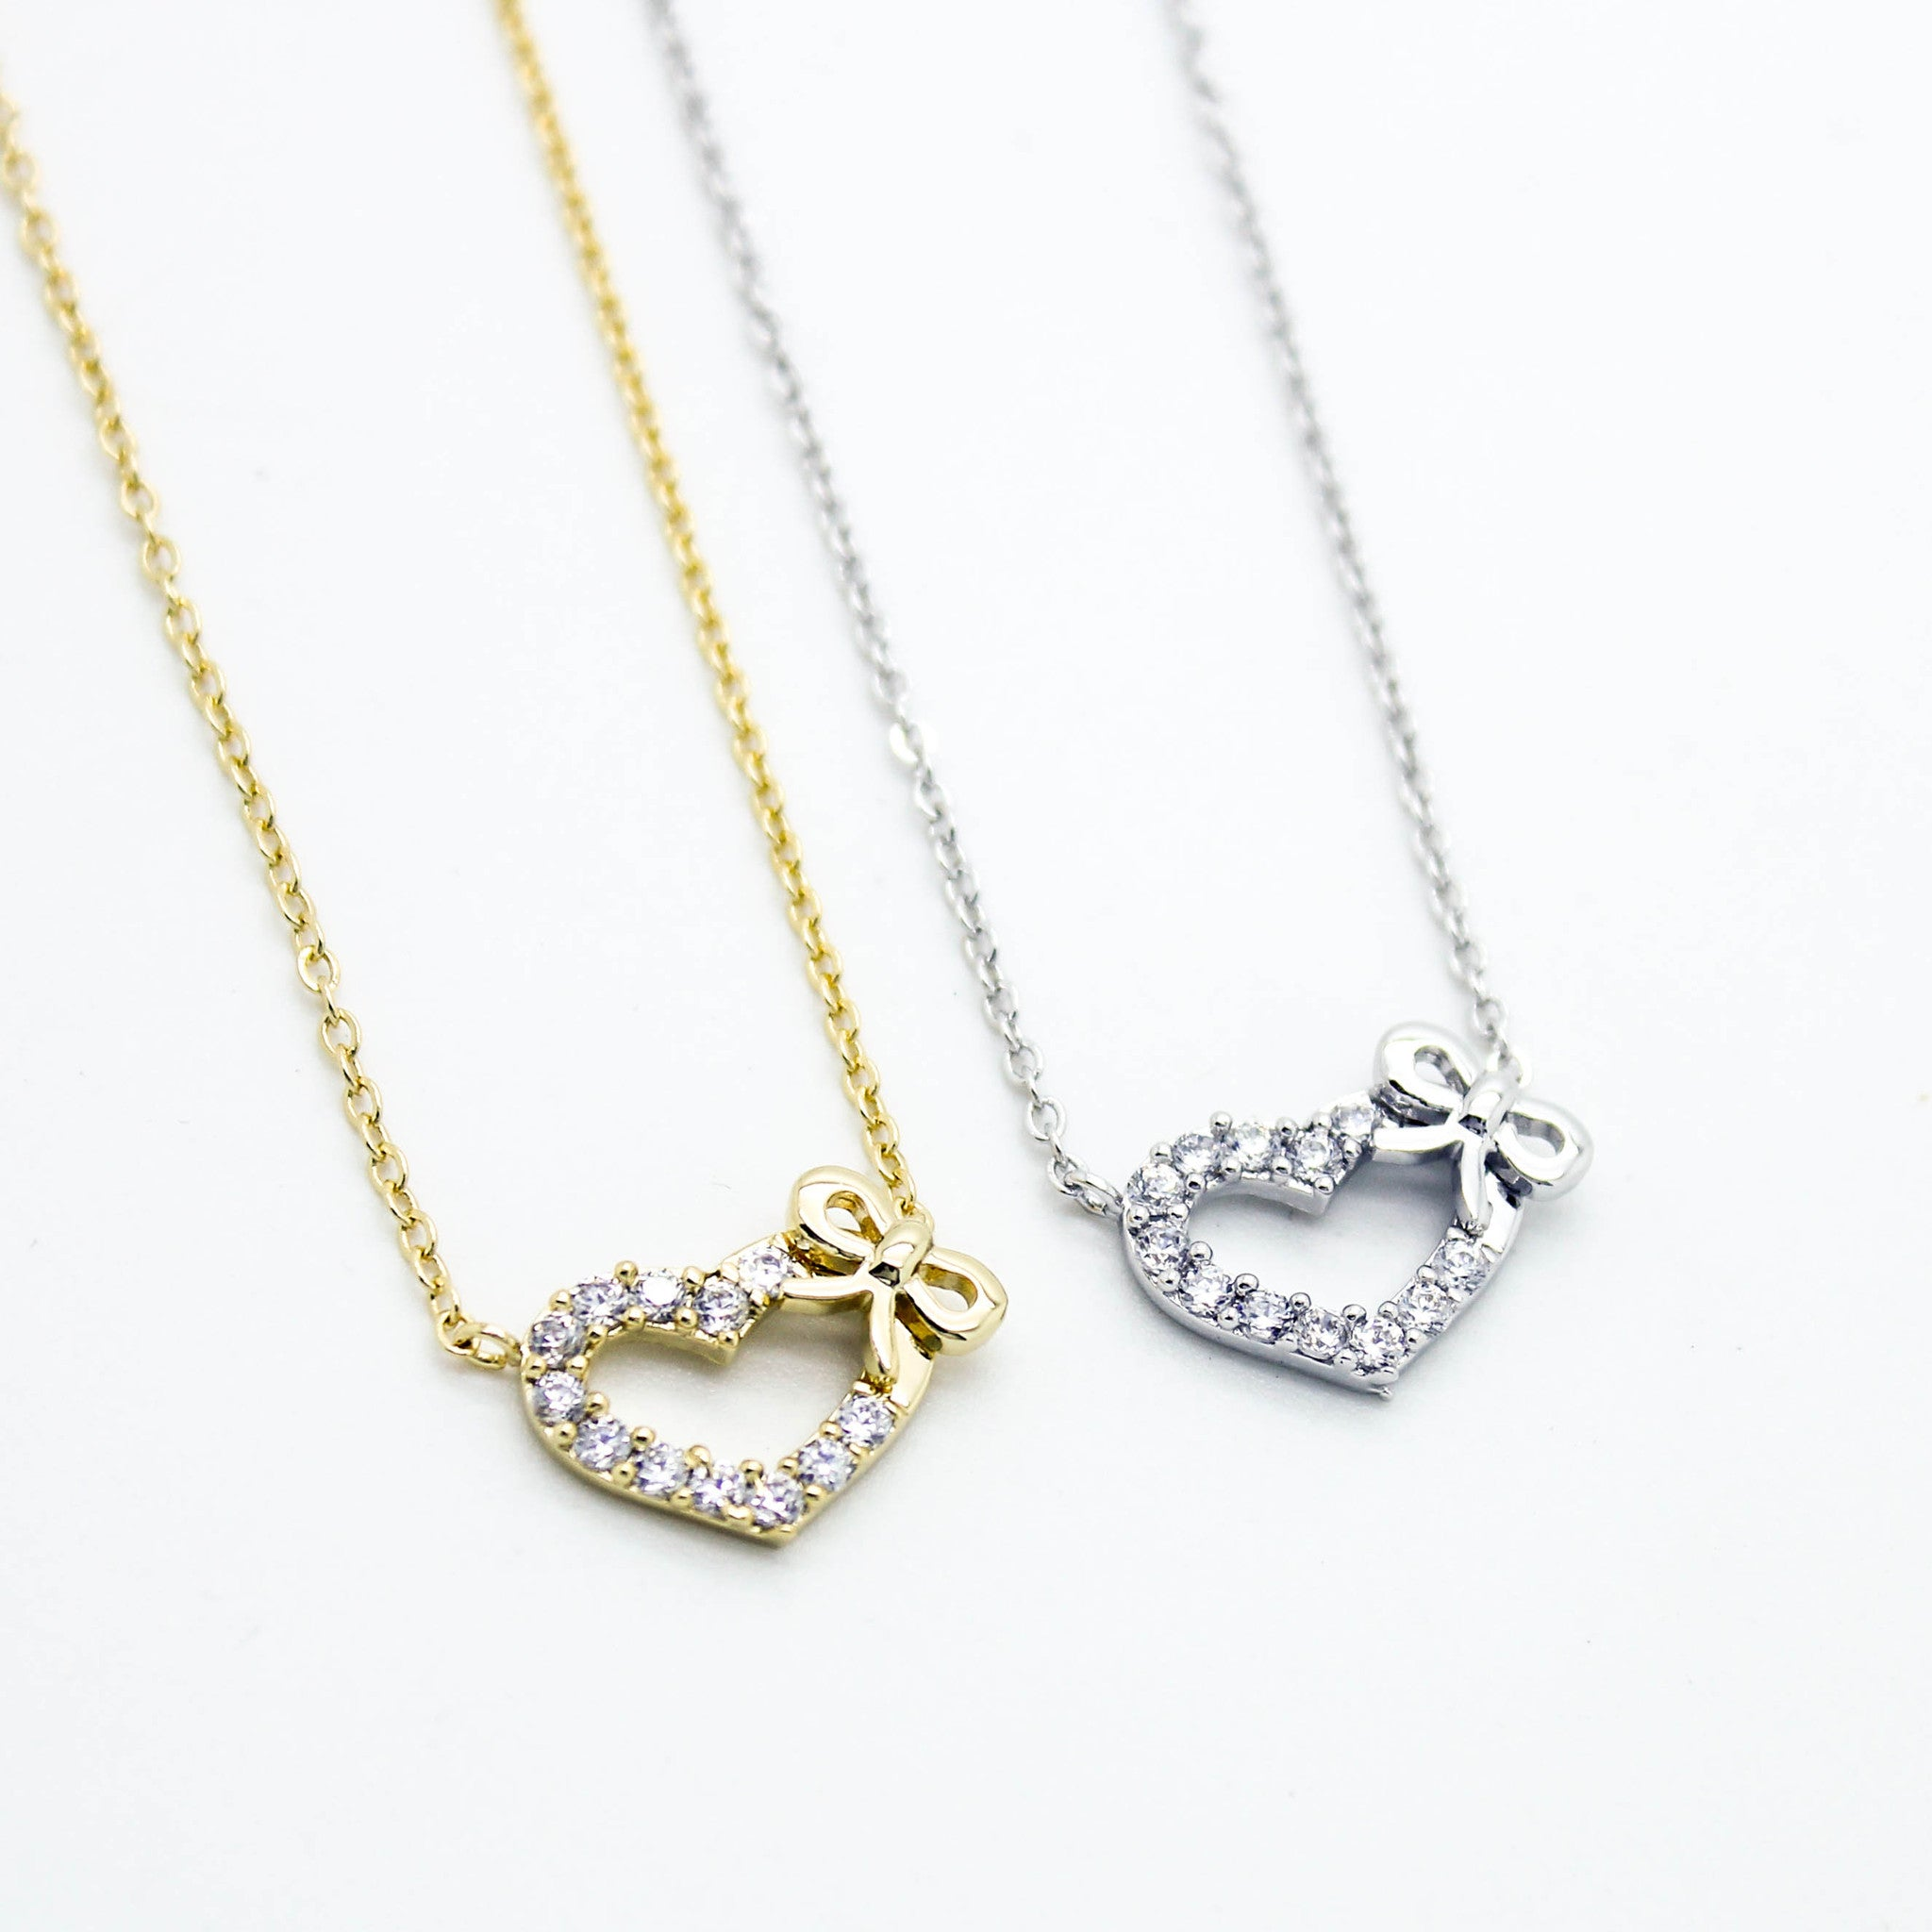 gold something bow zoom necklace sterling jewellery quot little a silver on necklaces rose simply plated